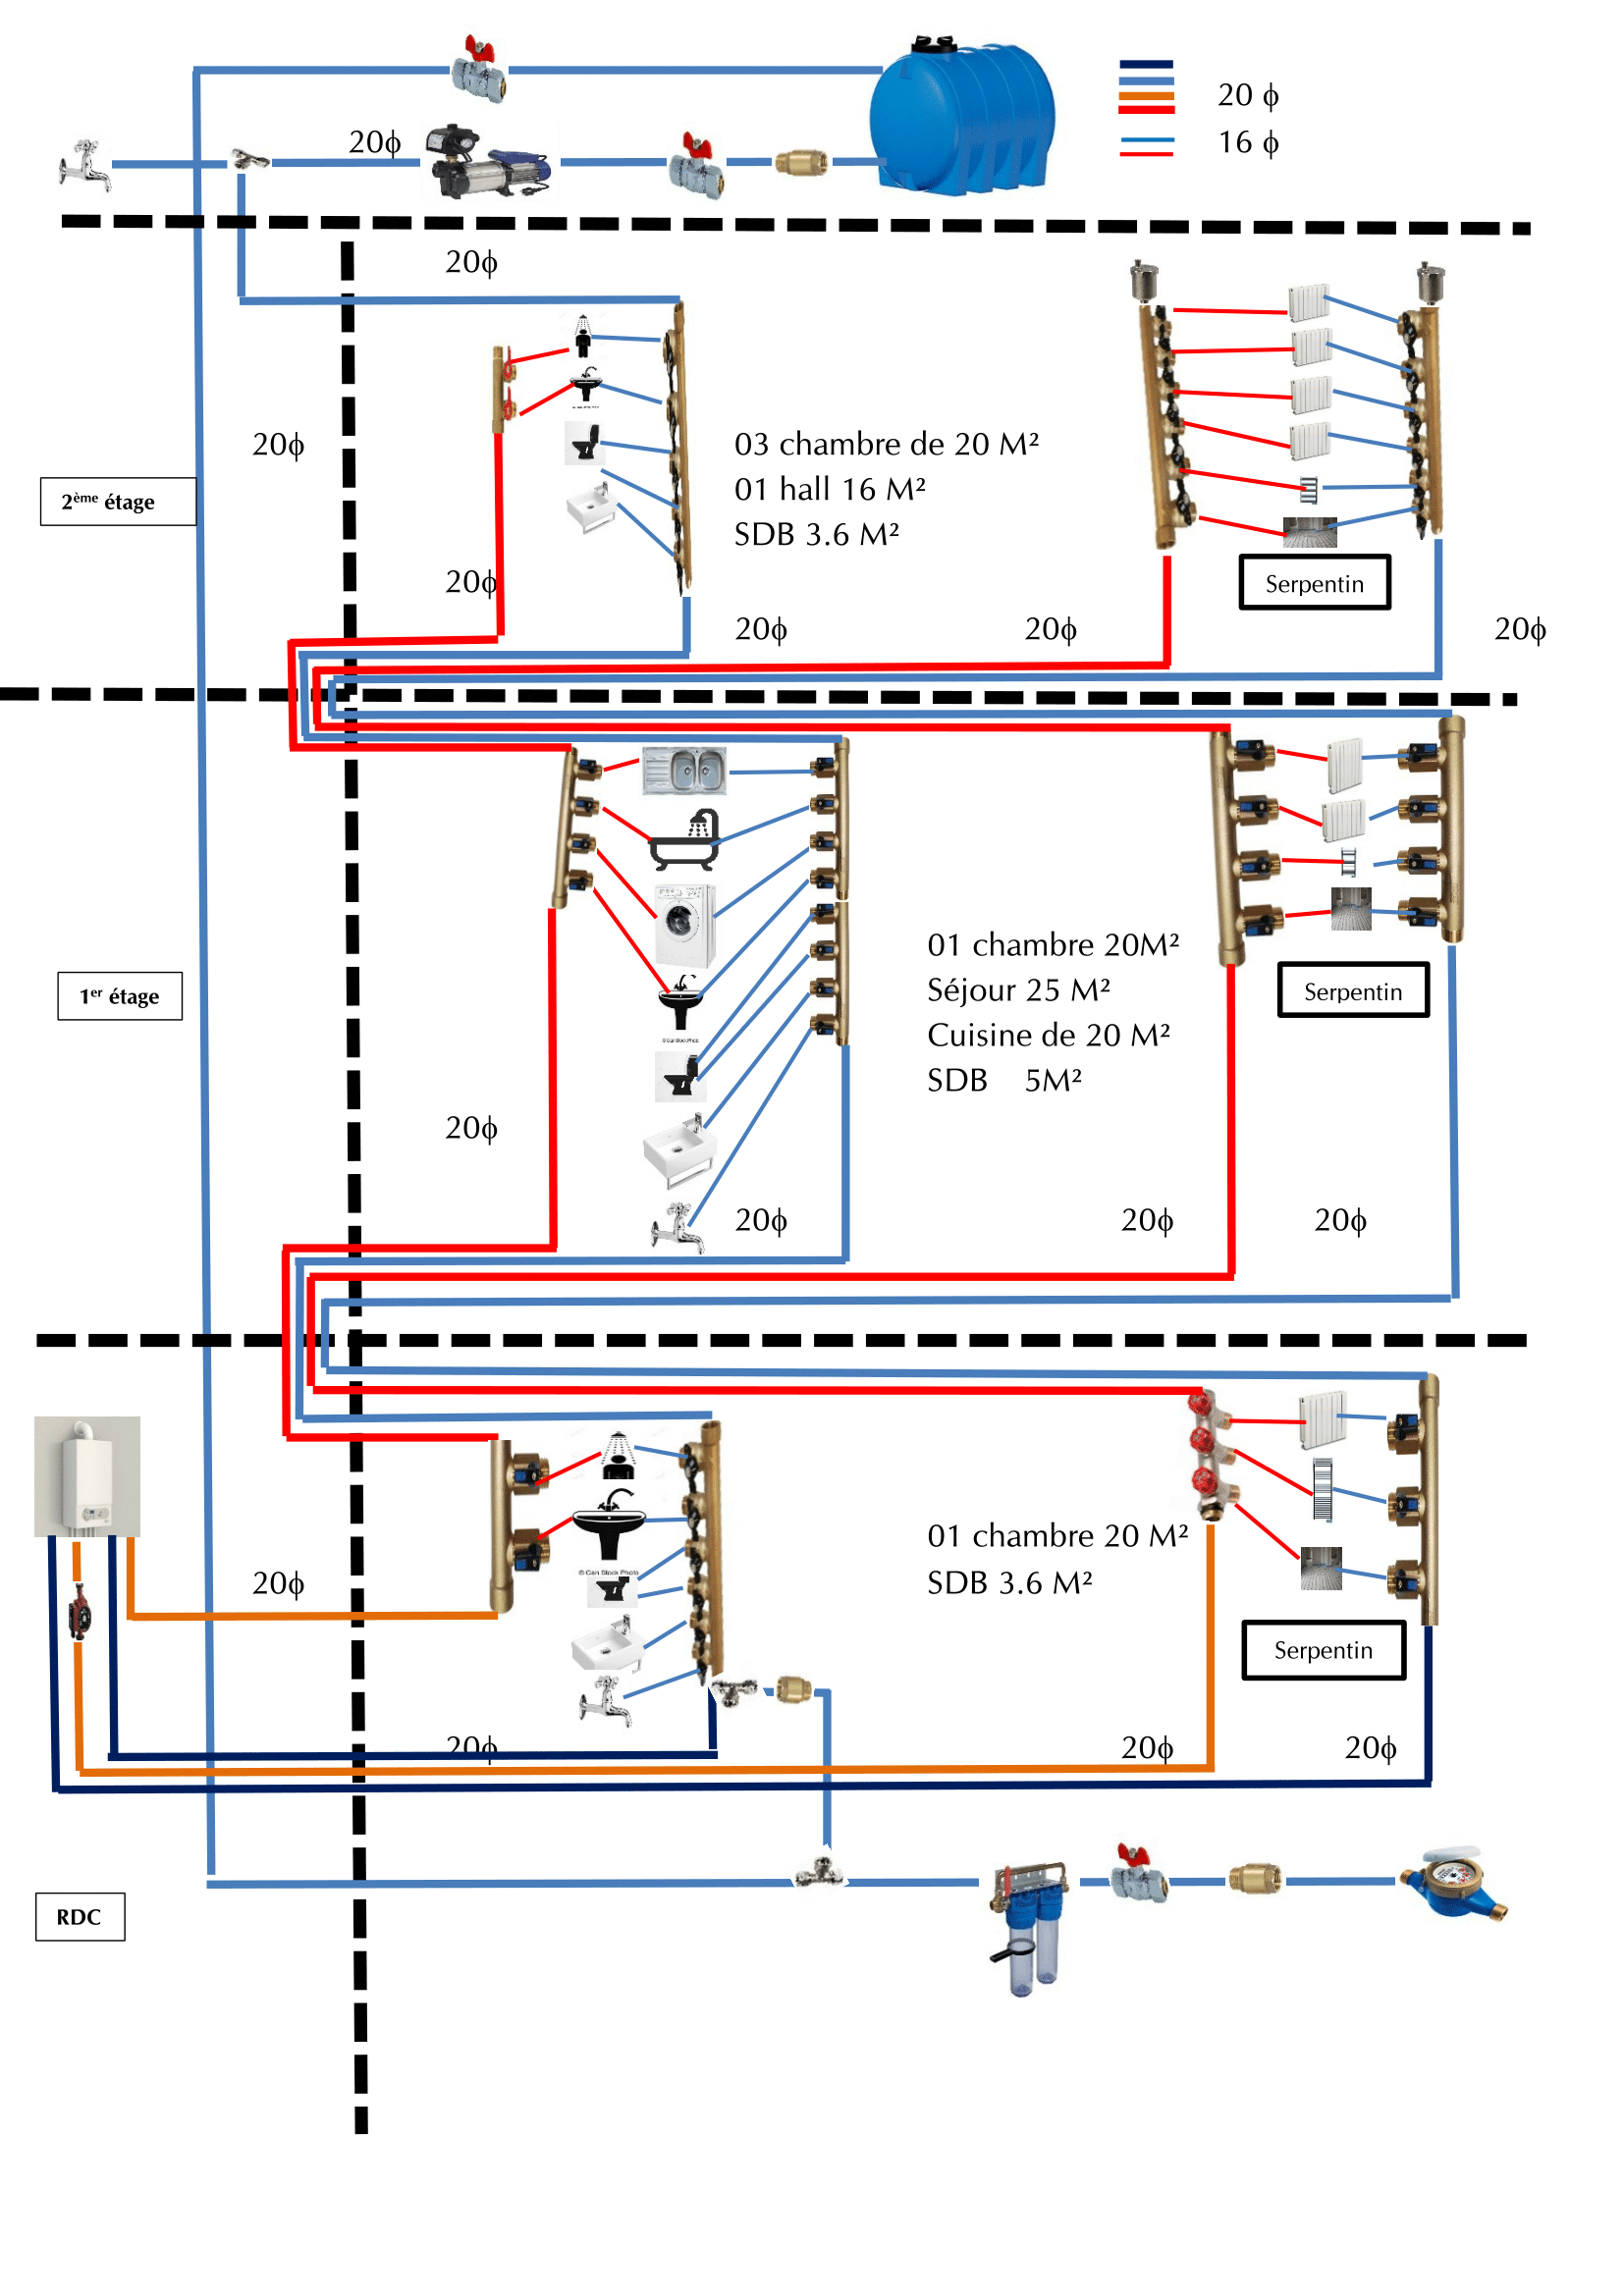 PLAN PLOMBERIE-2.png, 390.03 kb, 1654 x 2339